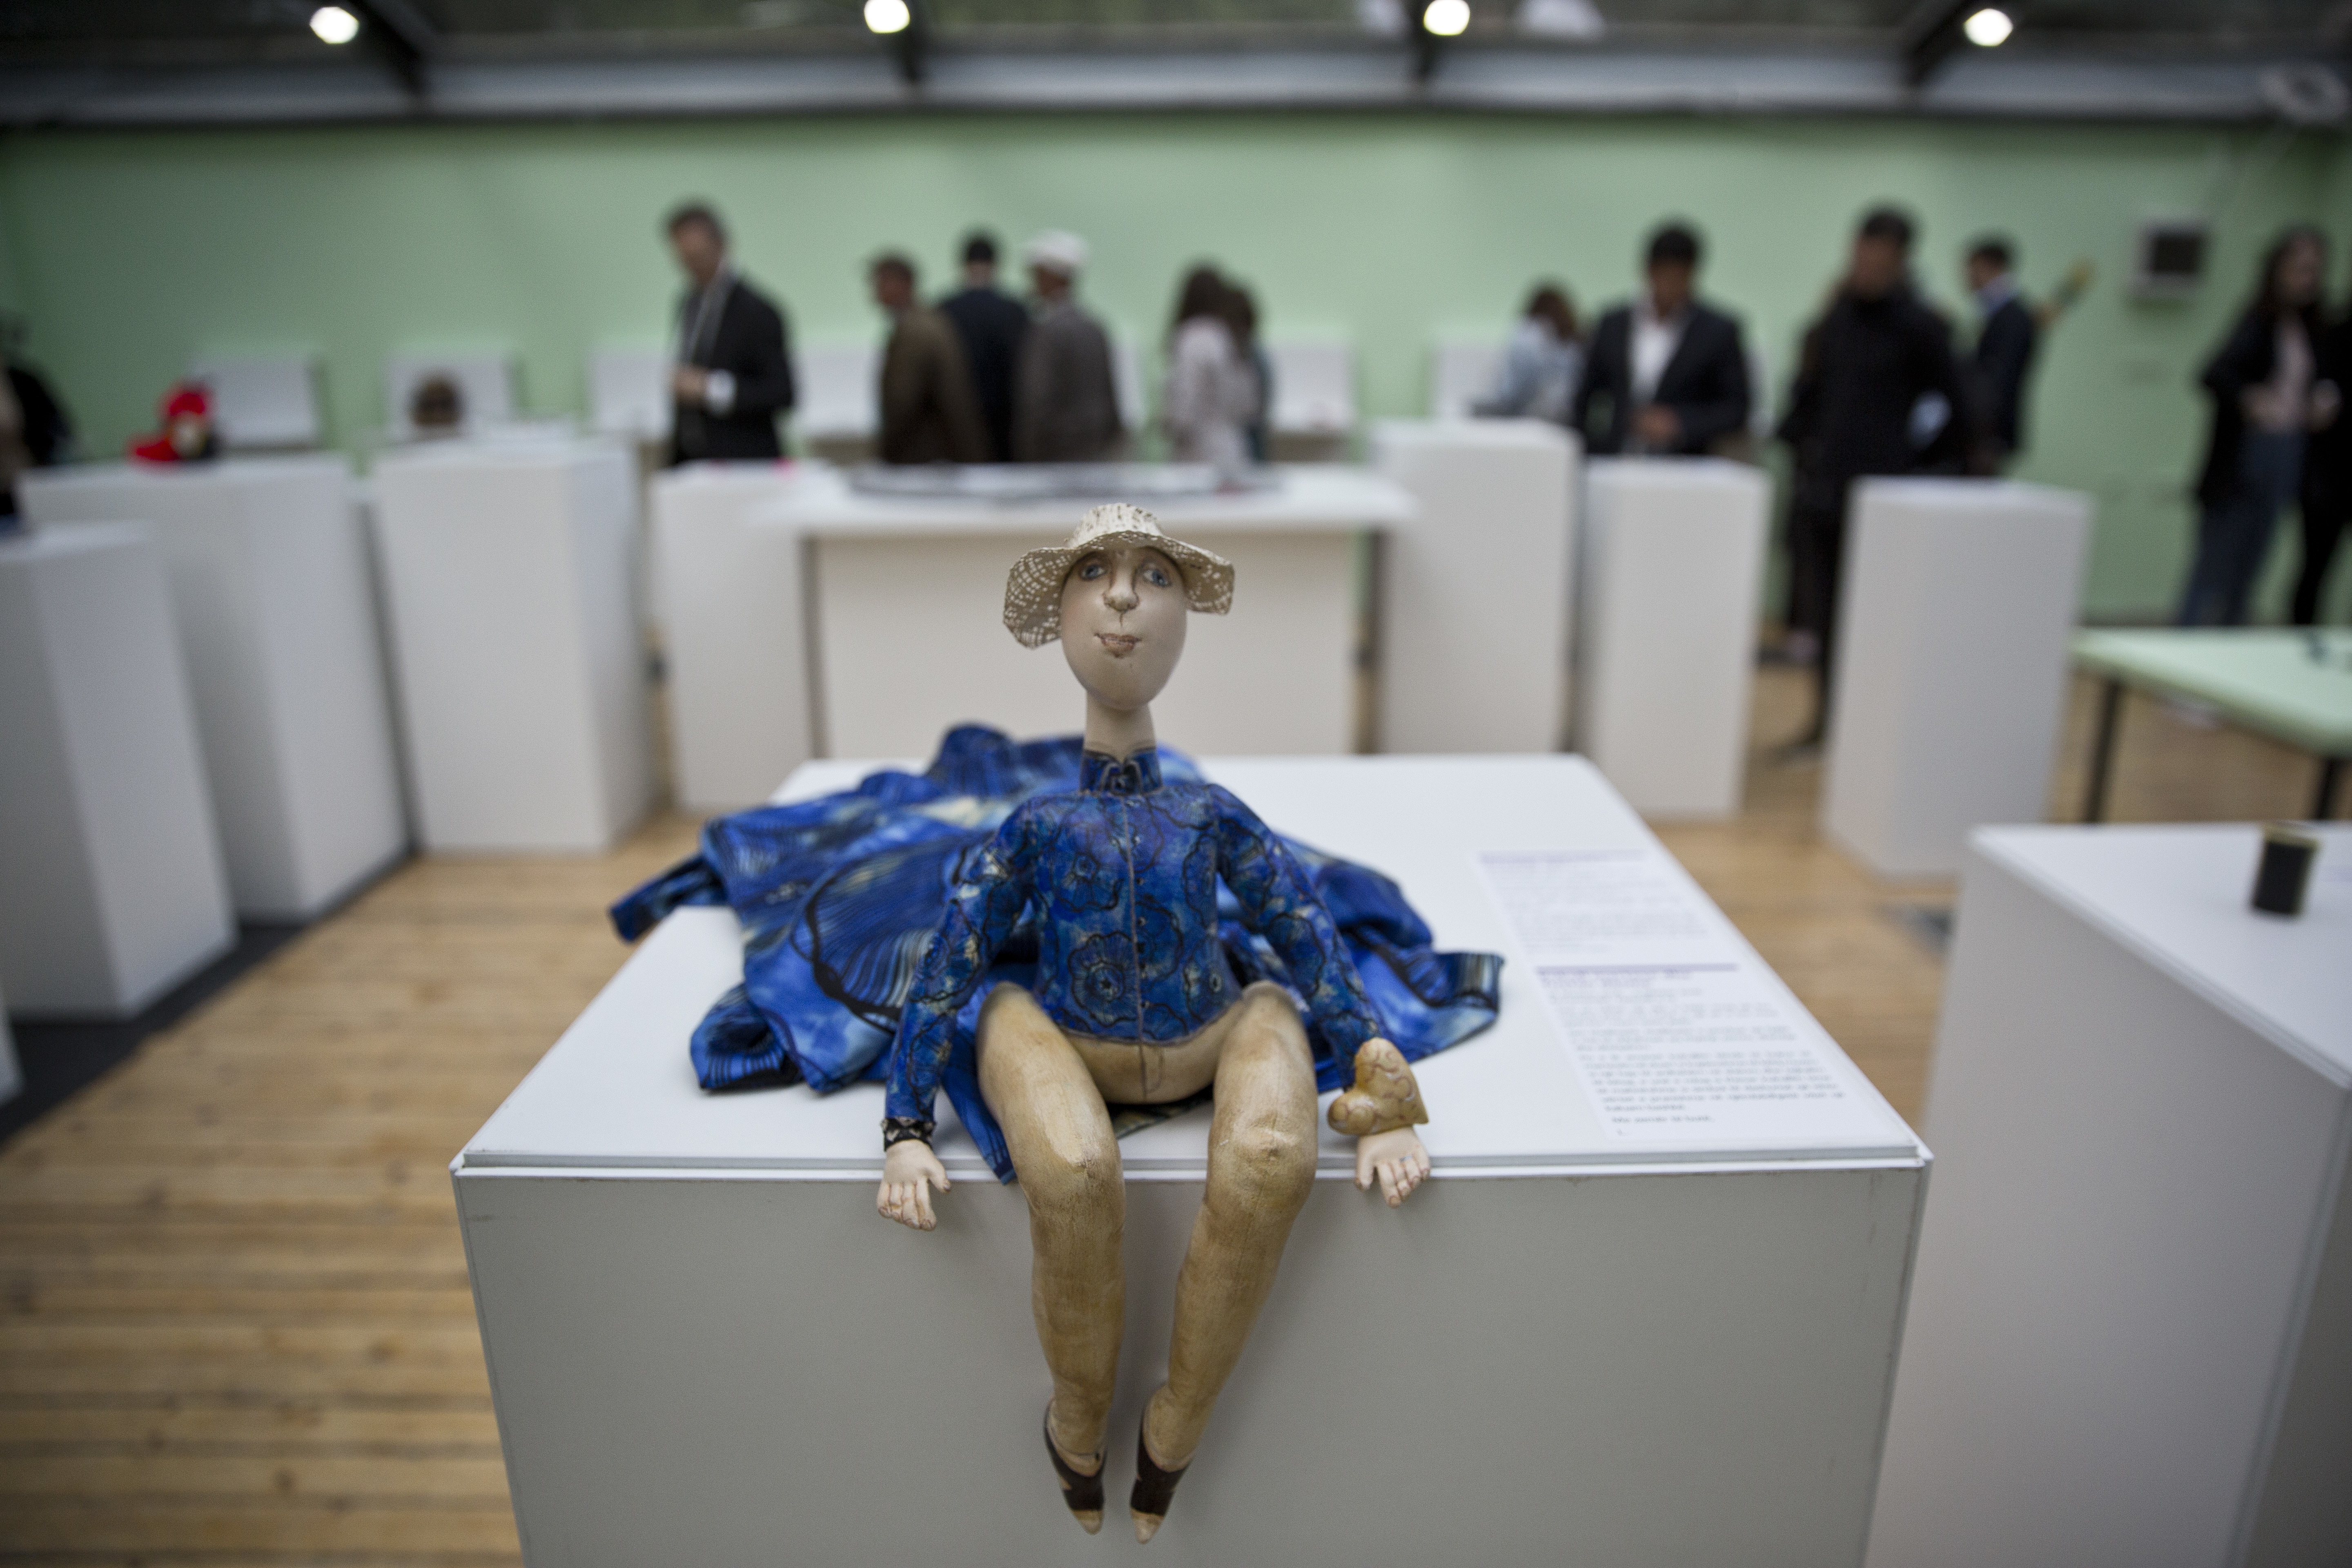 A toy doll is displayed as visitors look at items presented at the Museum of Broken Relationships in Pristina, Kosovo, May 3, 2018.